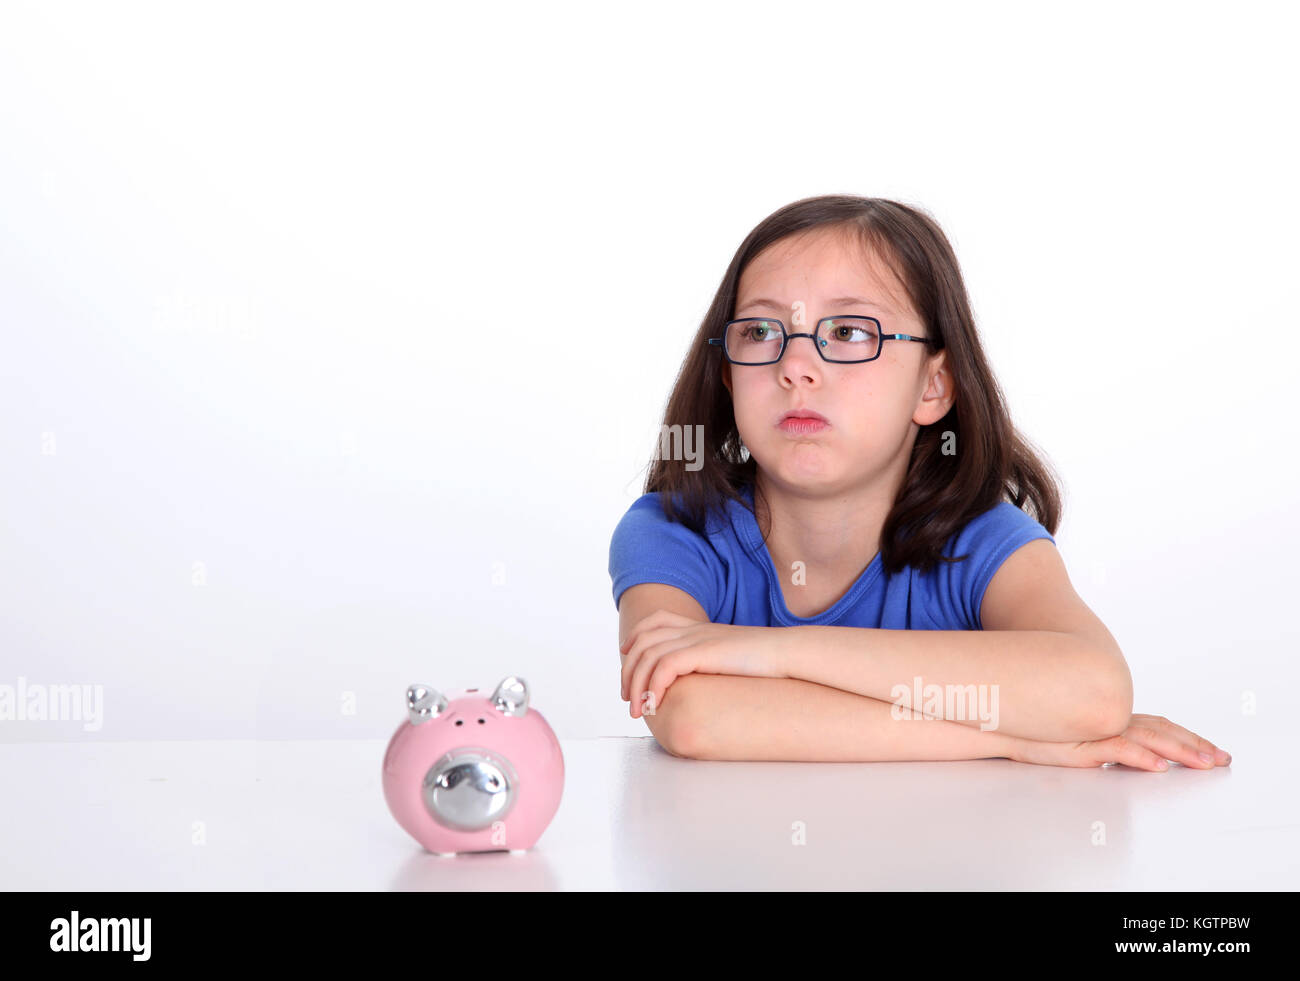 Little girl with bored look sitting by piggybank - Stock Image